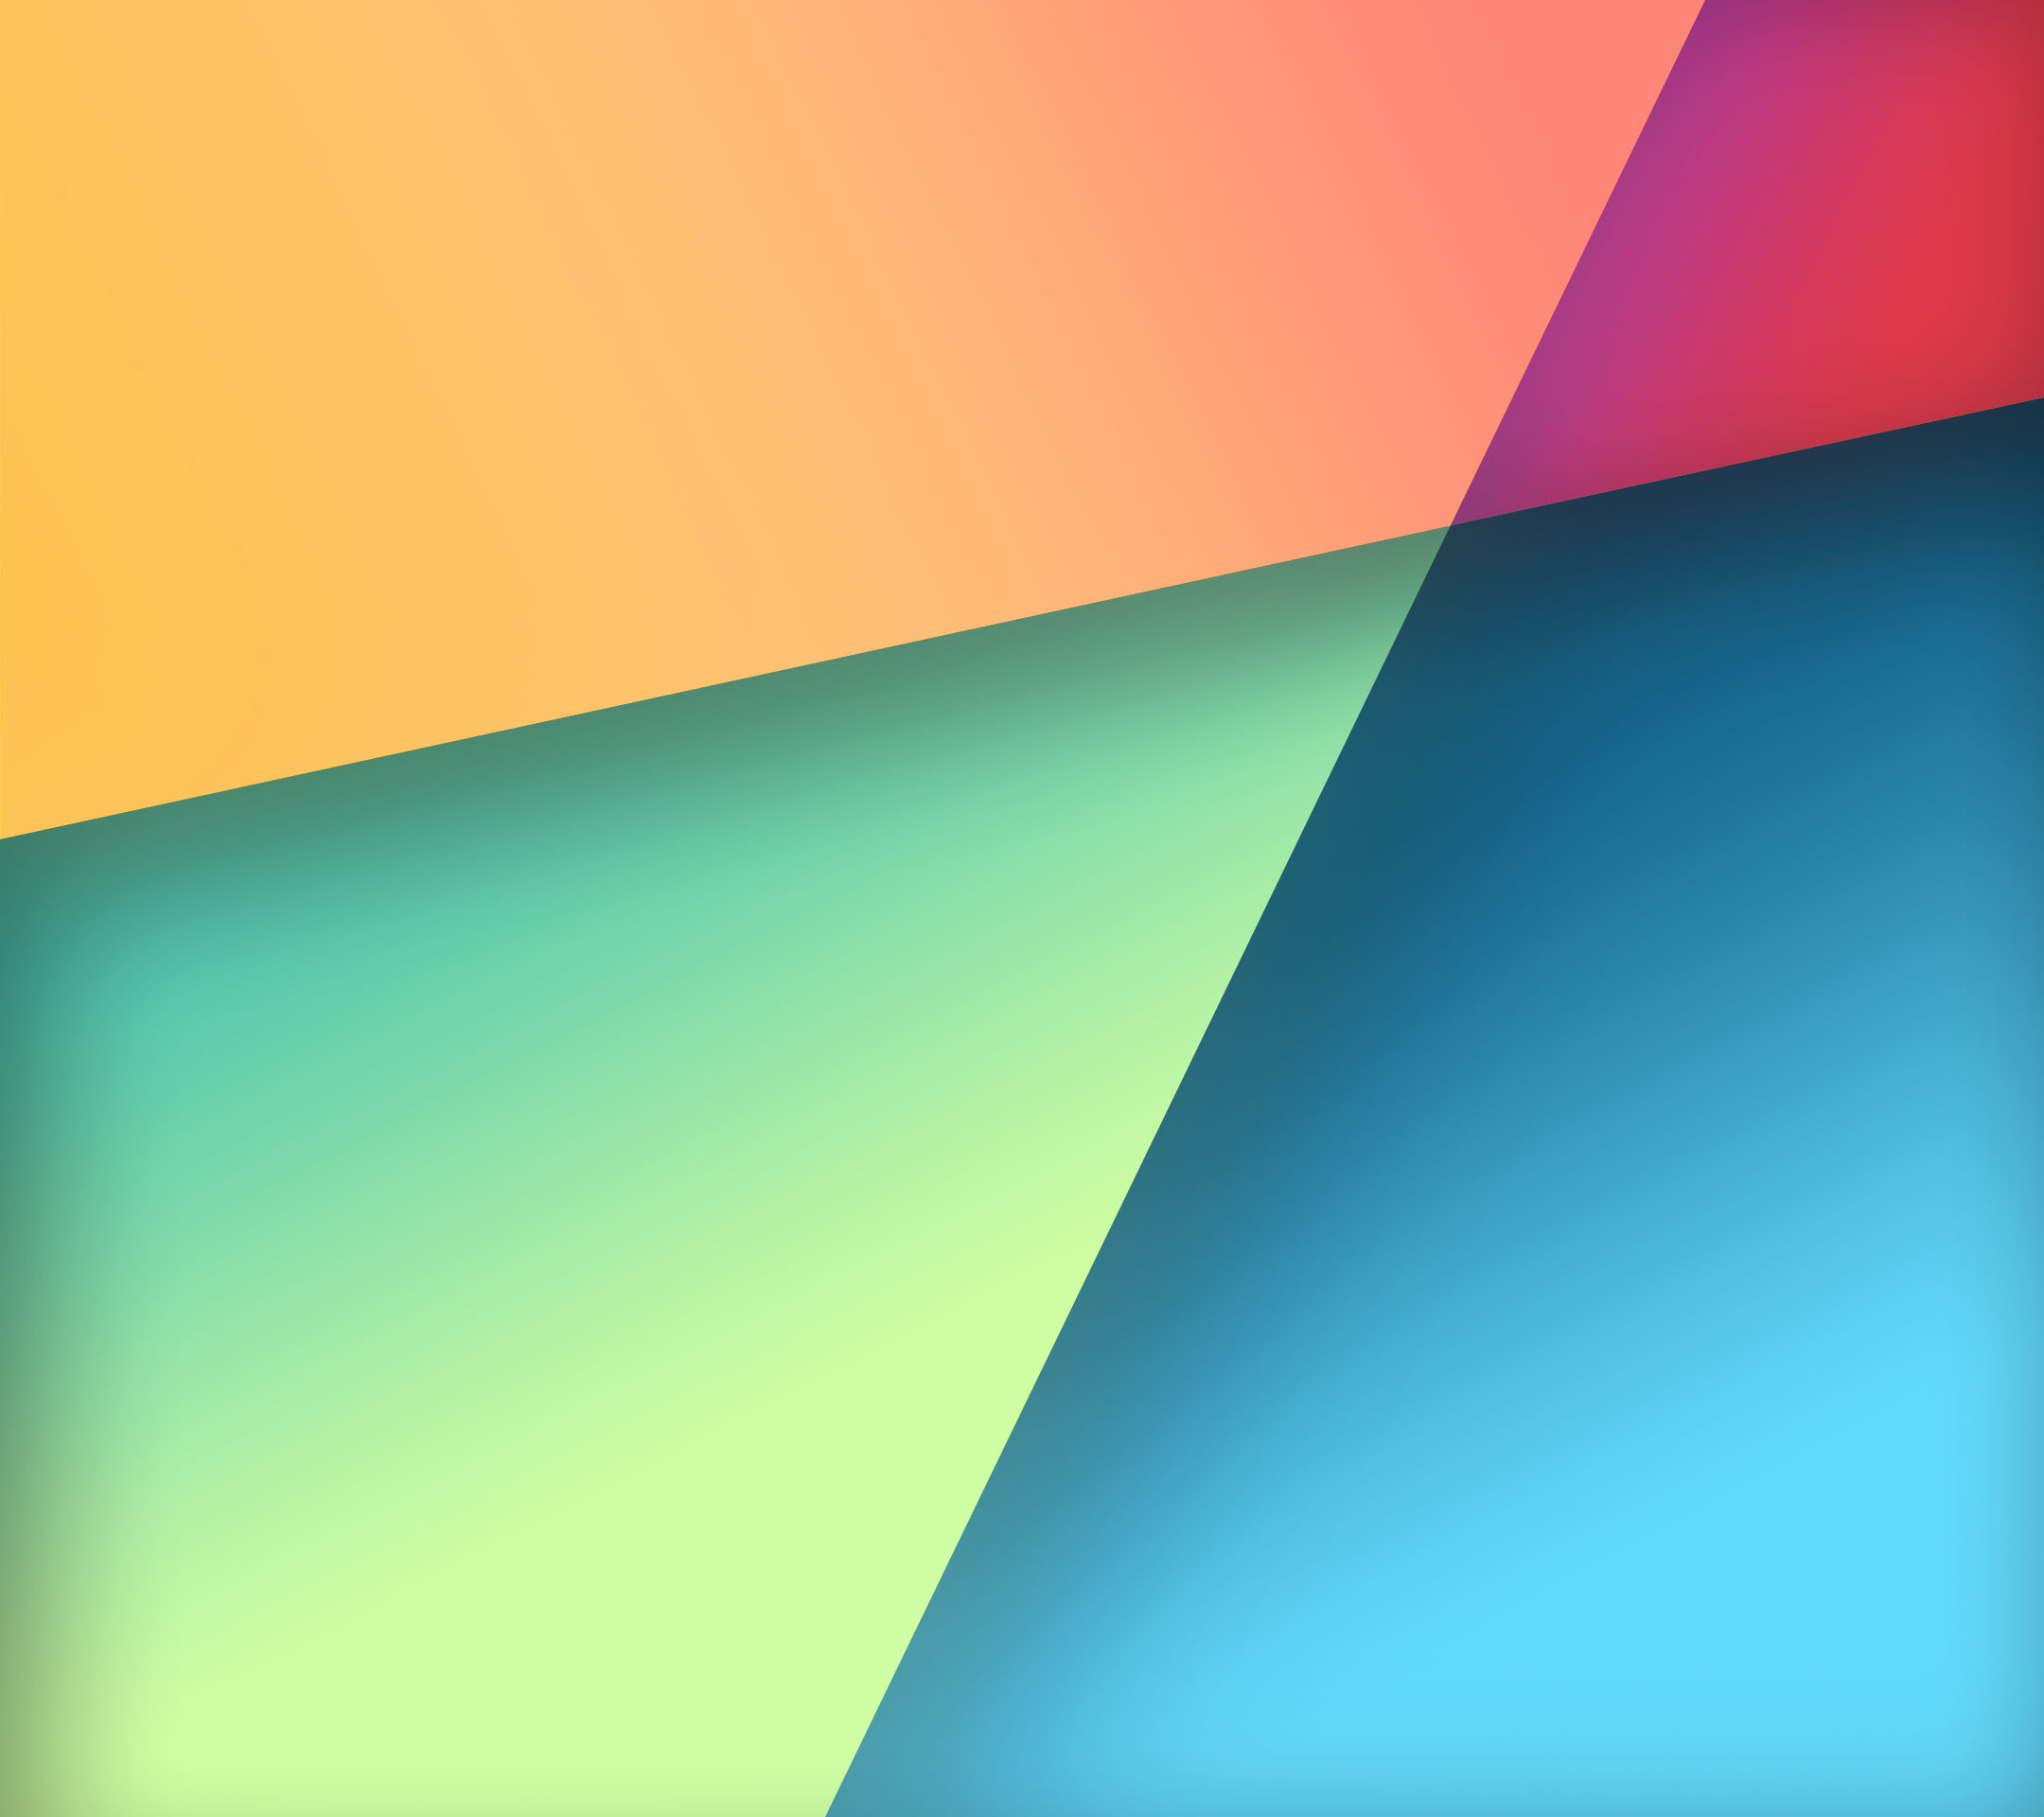 nexus 7 stock wallpaper in google play colors by r3conn3r